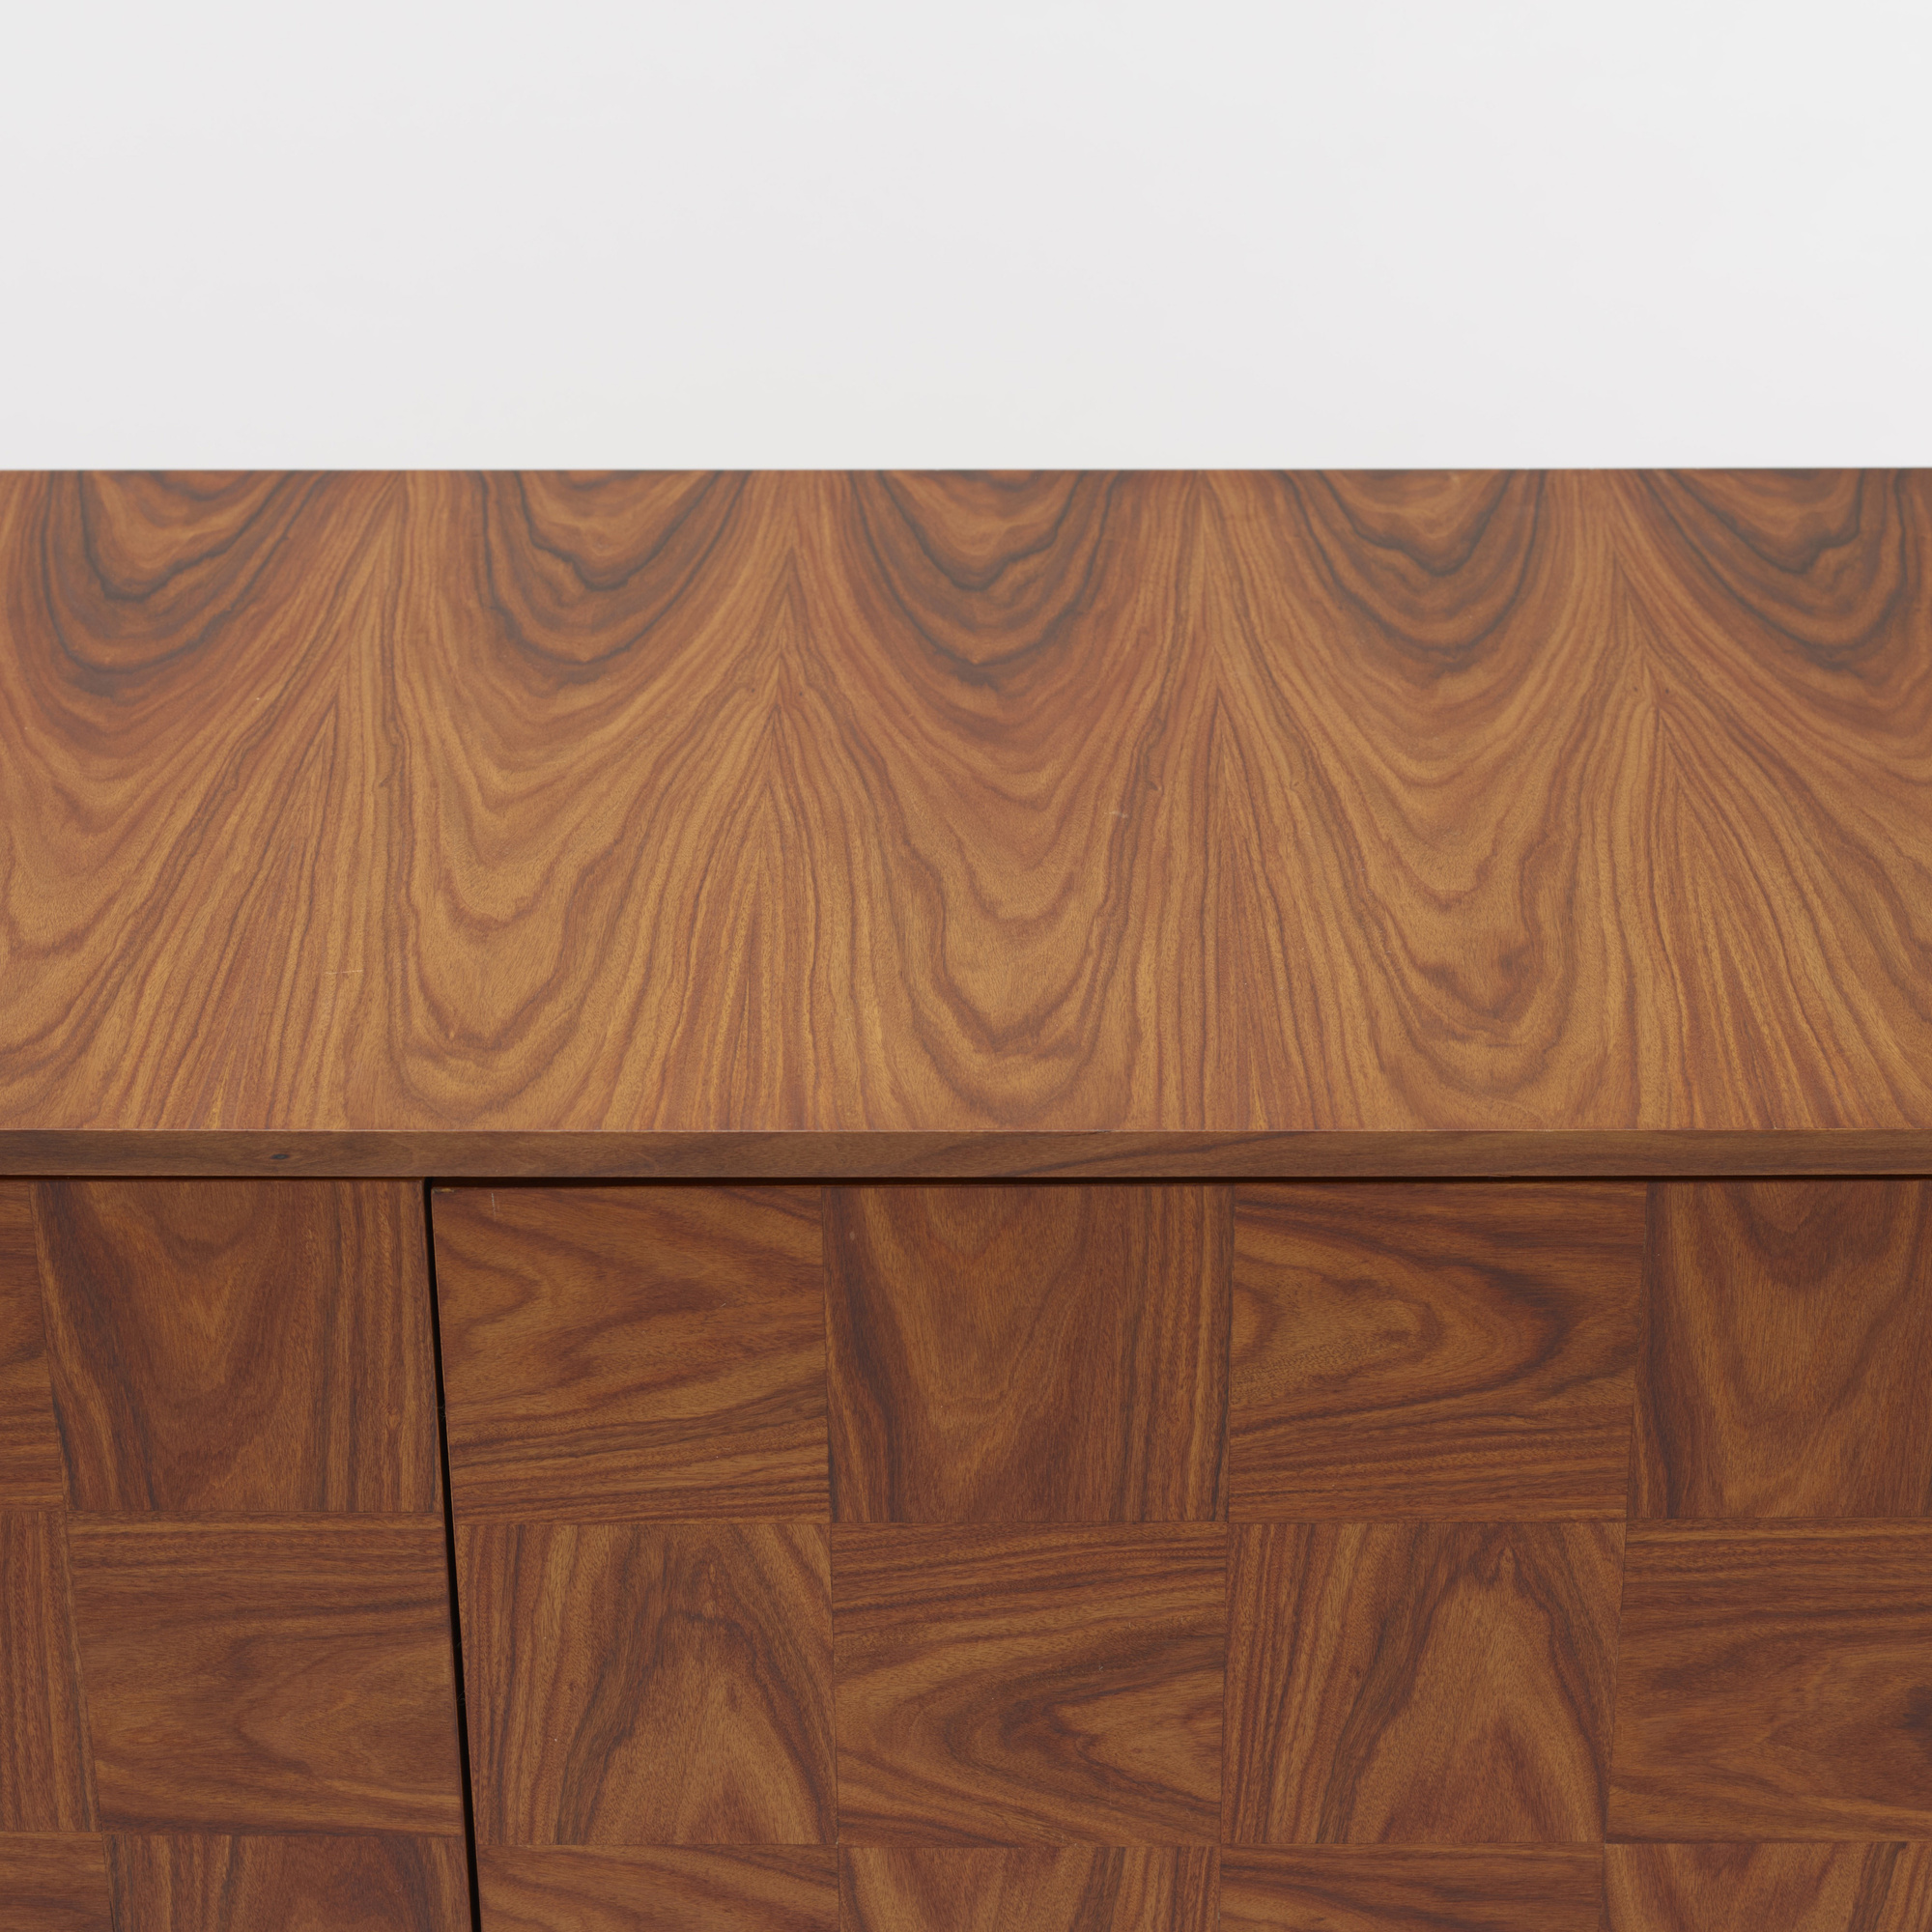 228: Giuseppe Scapinelli / cabinet (3 of 4)